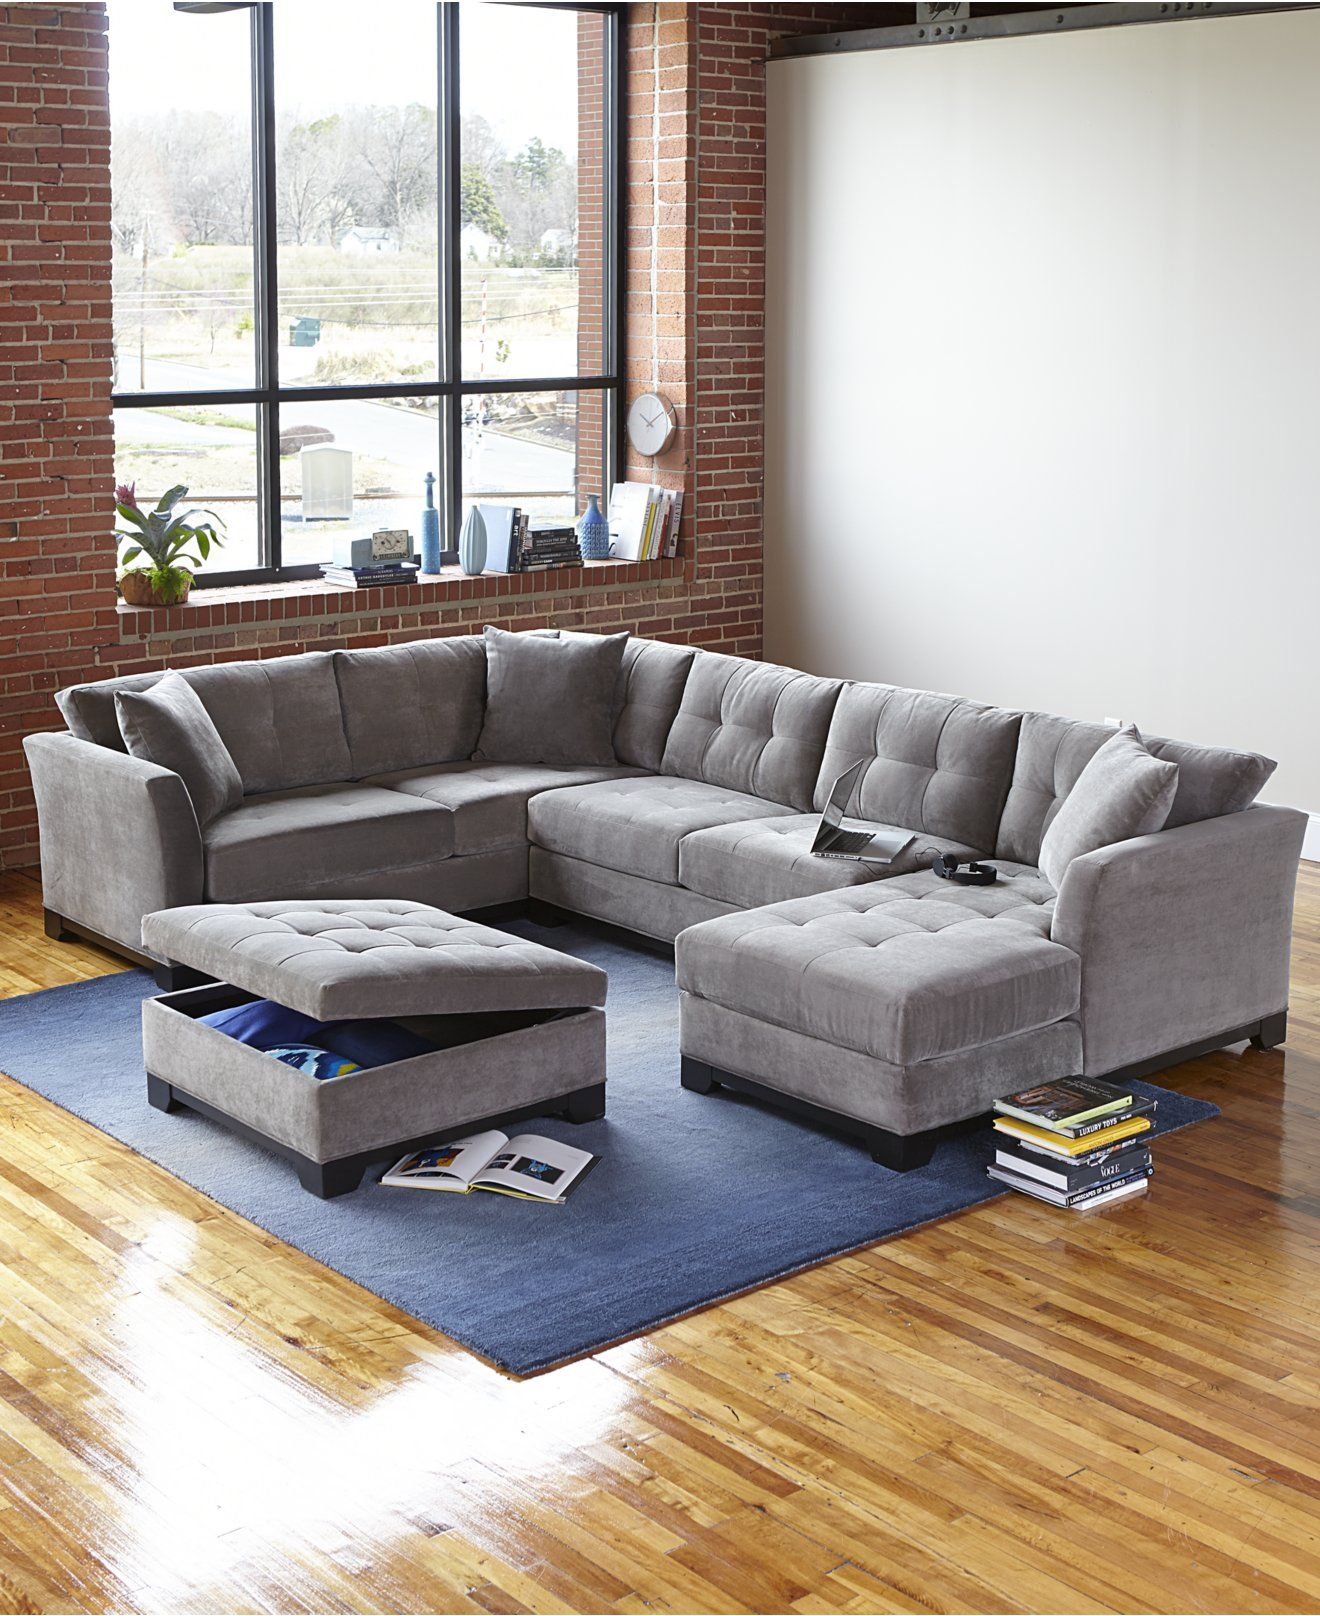 Elliot Fabric Microfiber 3 Piece Chaise Sectional Sofa Shops. El Dorado Furniture Living Room Sets. Eldorado Stone Accent Wall Alderwood Stacked Stone Would Love. Coastal Living Rooms That Will Make You Yearn for The Beach